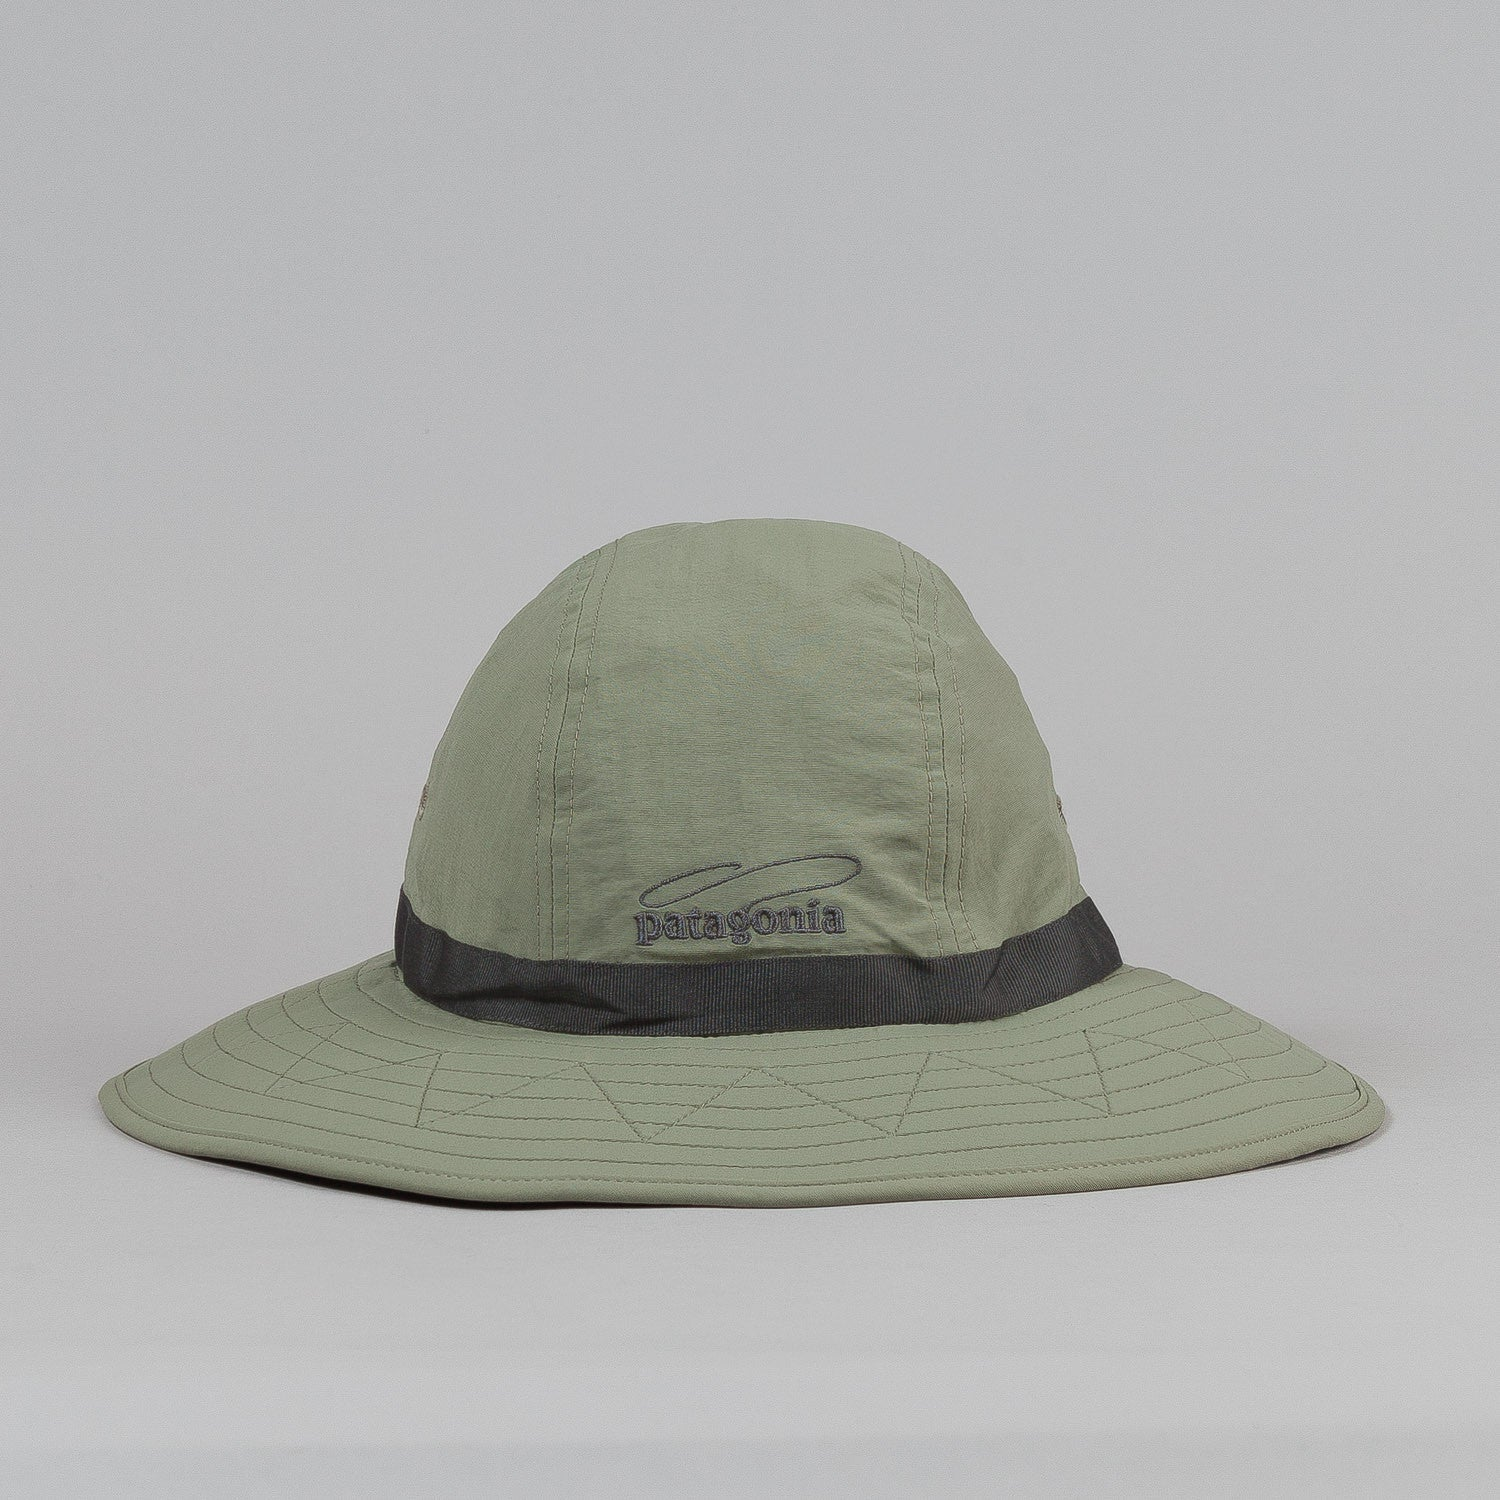 Patagonia Sun Booney Hat - Trail Green